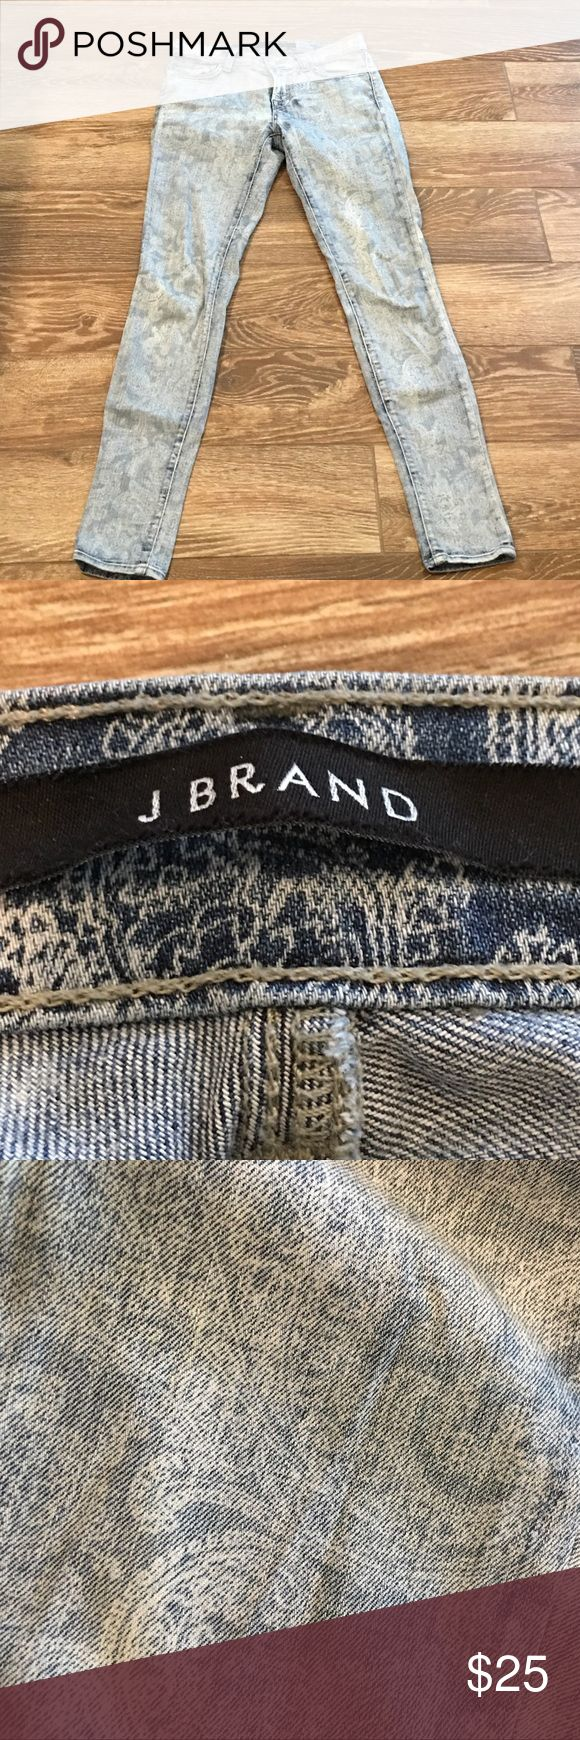 """J Brand skinny jeans J Brand light wash paisley skinny jeans. Gently worn. Purchased at Nordstrom's. Inseam approx 29"""" J Brand Jeans Ankle & Cropped"""